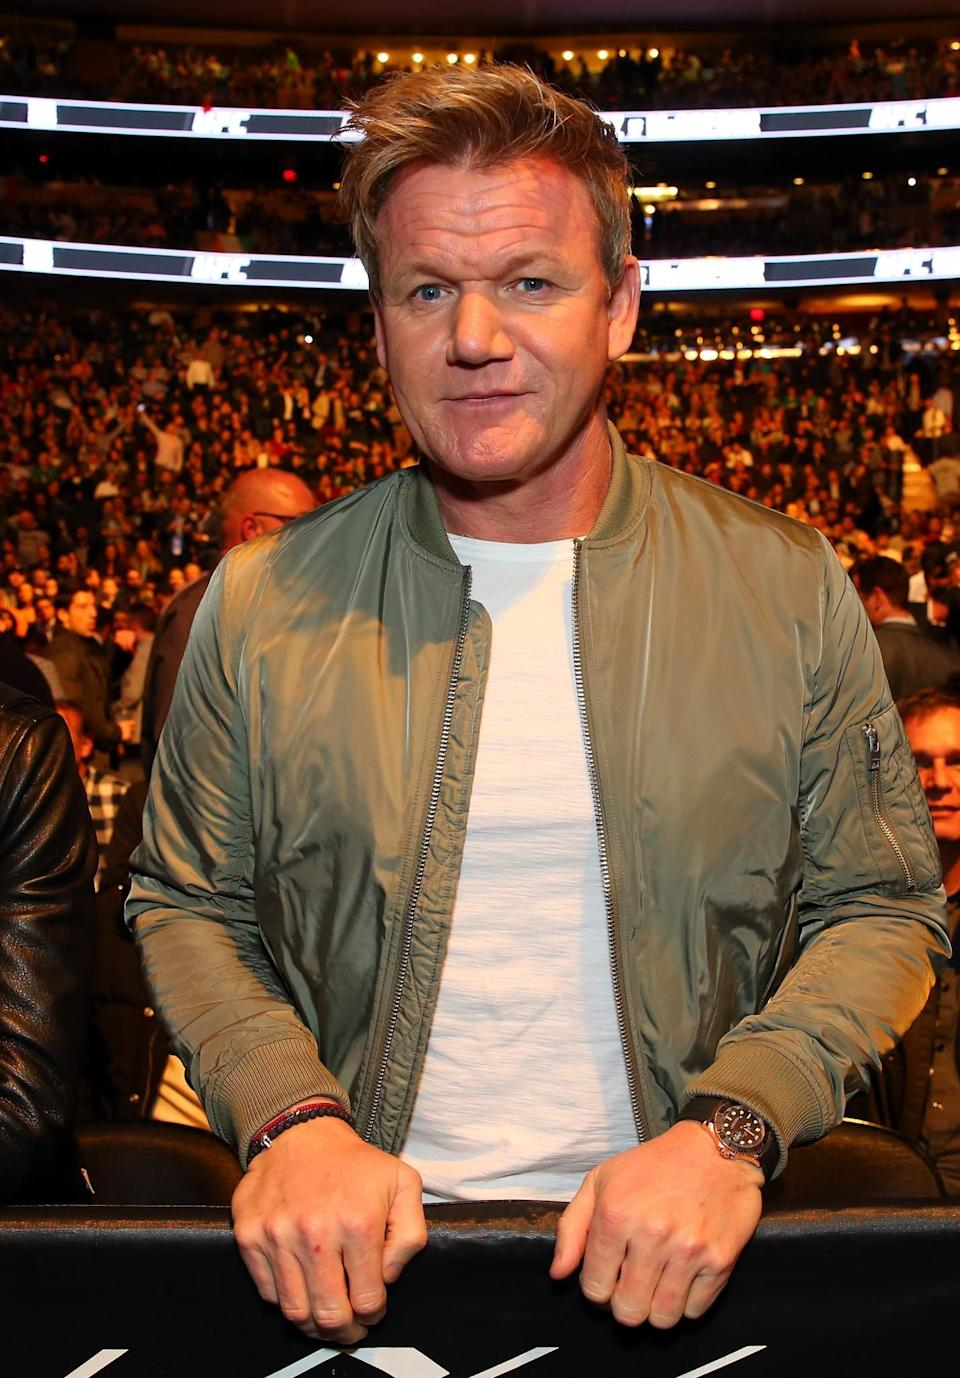 <p>Celebrity Chef Gordan Ramsey looks on during the women's bantamweight bout between Miesha Tate of the United States and Raquel Pennington of the United States during the UFC 205 event at Madison Square Garden on November 12, 2016 in New York City. (Photo by Mike Stobe/Zuffa LLC/Zuffa LLC via Getty Images) </p>